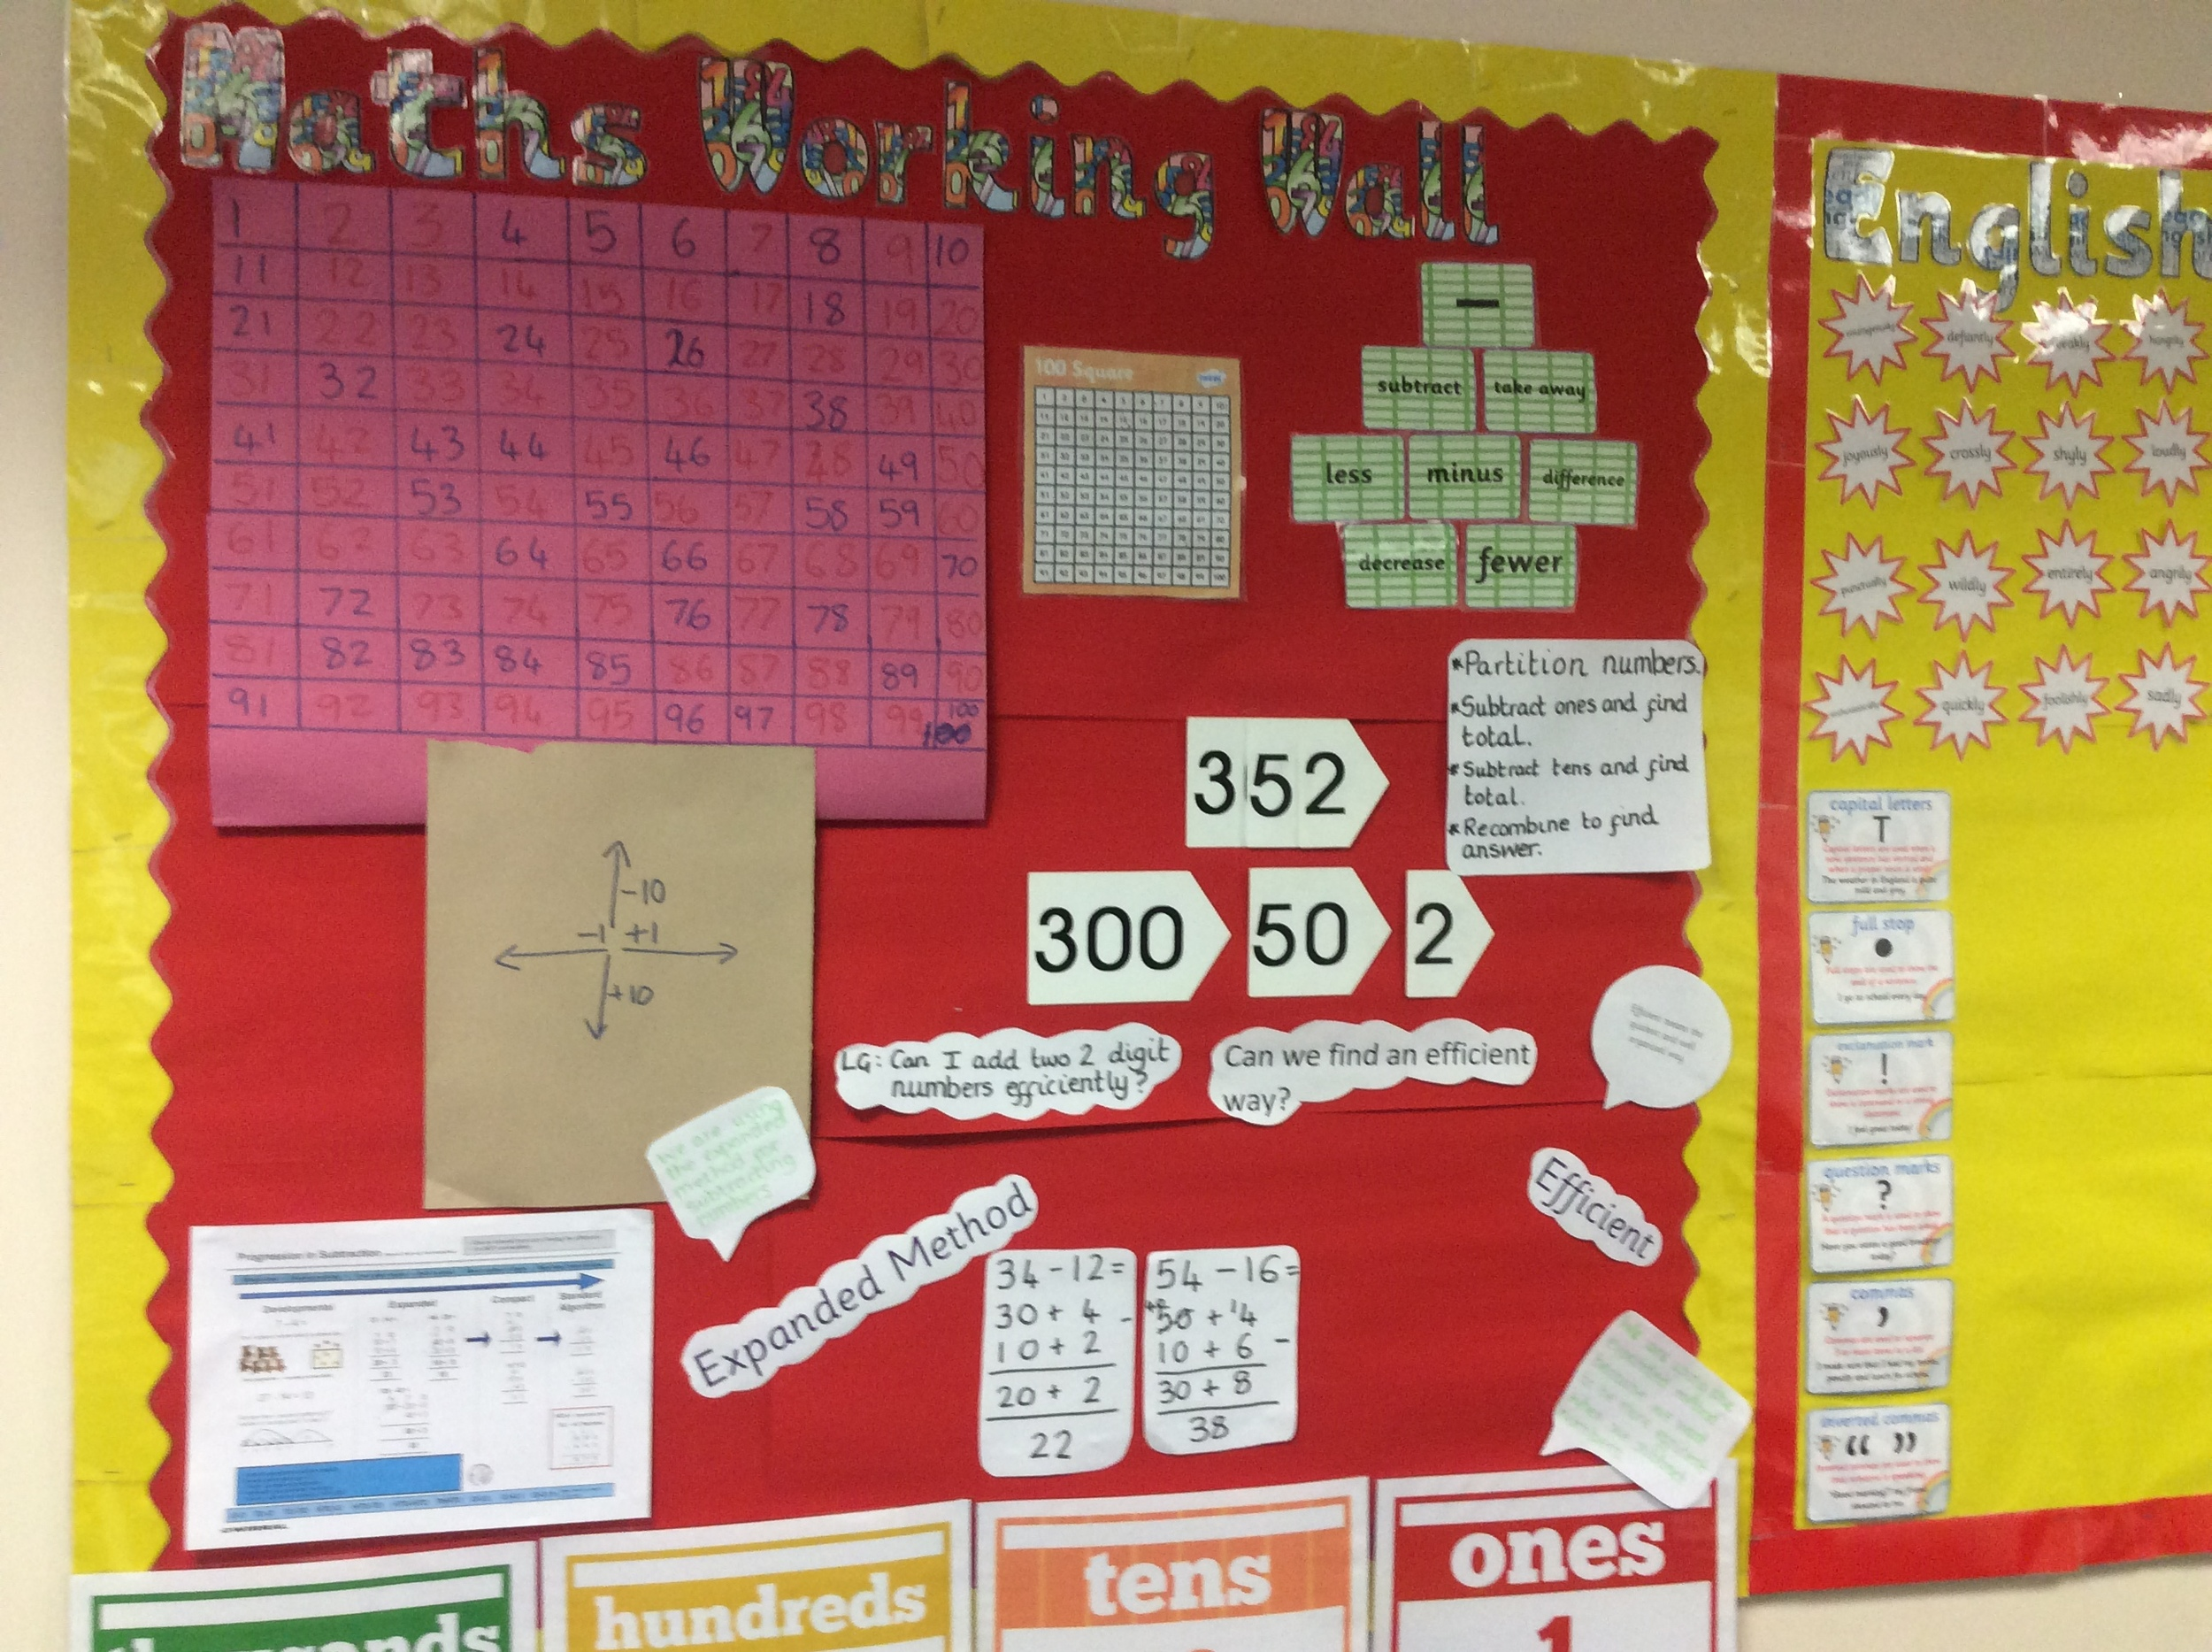 Our Maths Working wall to help us